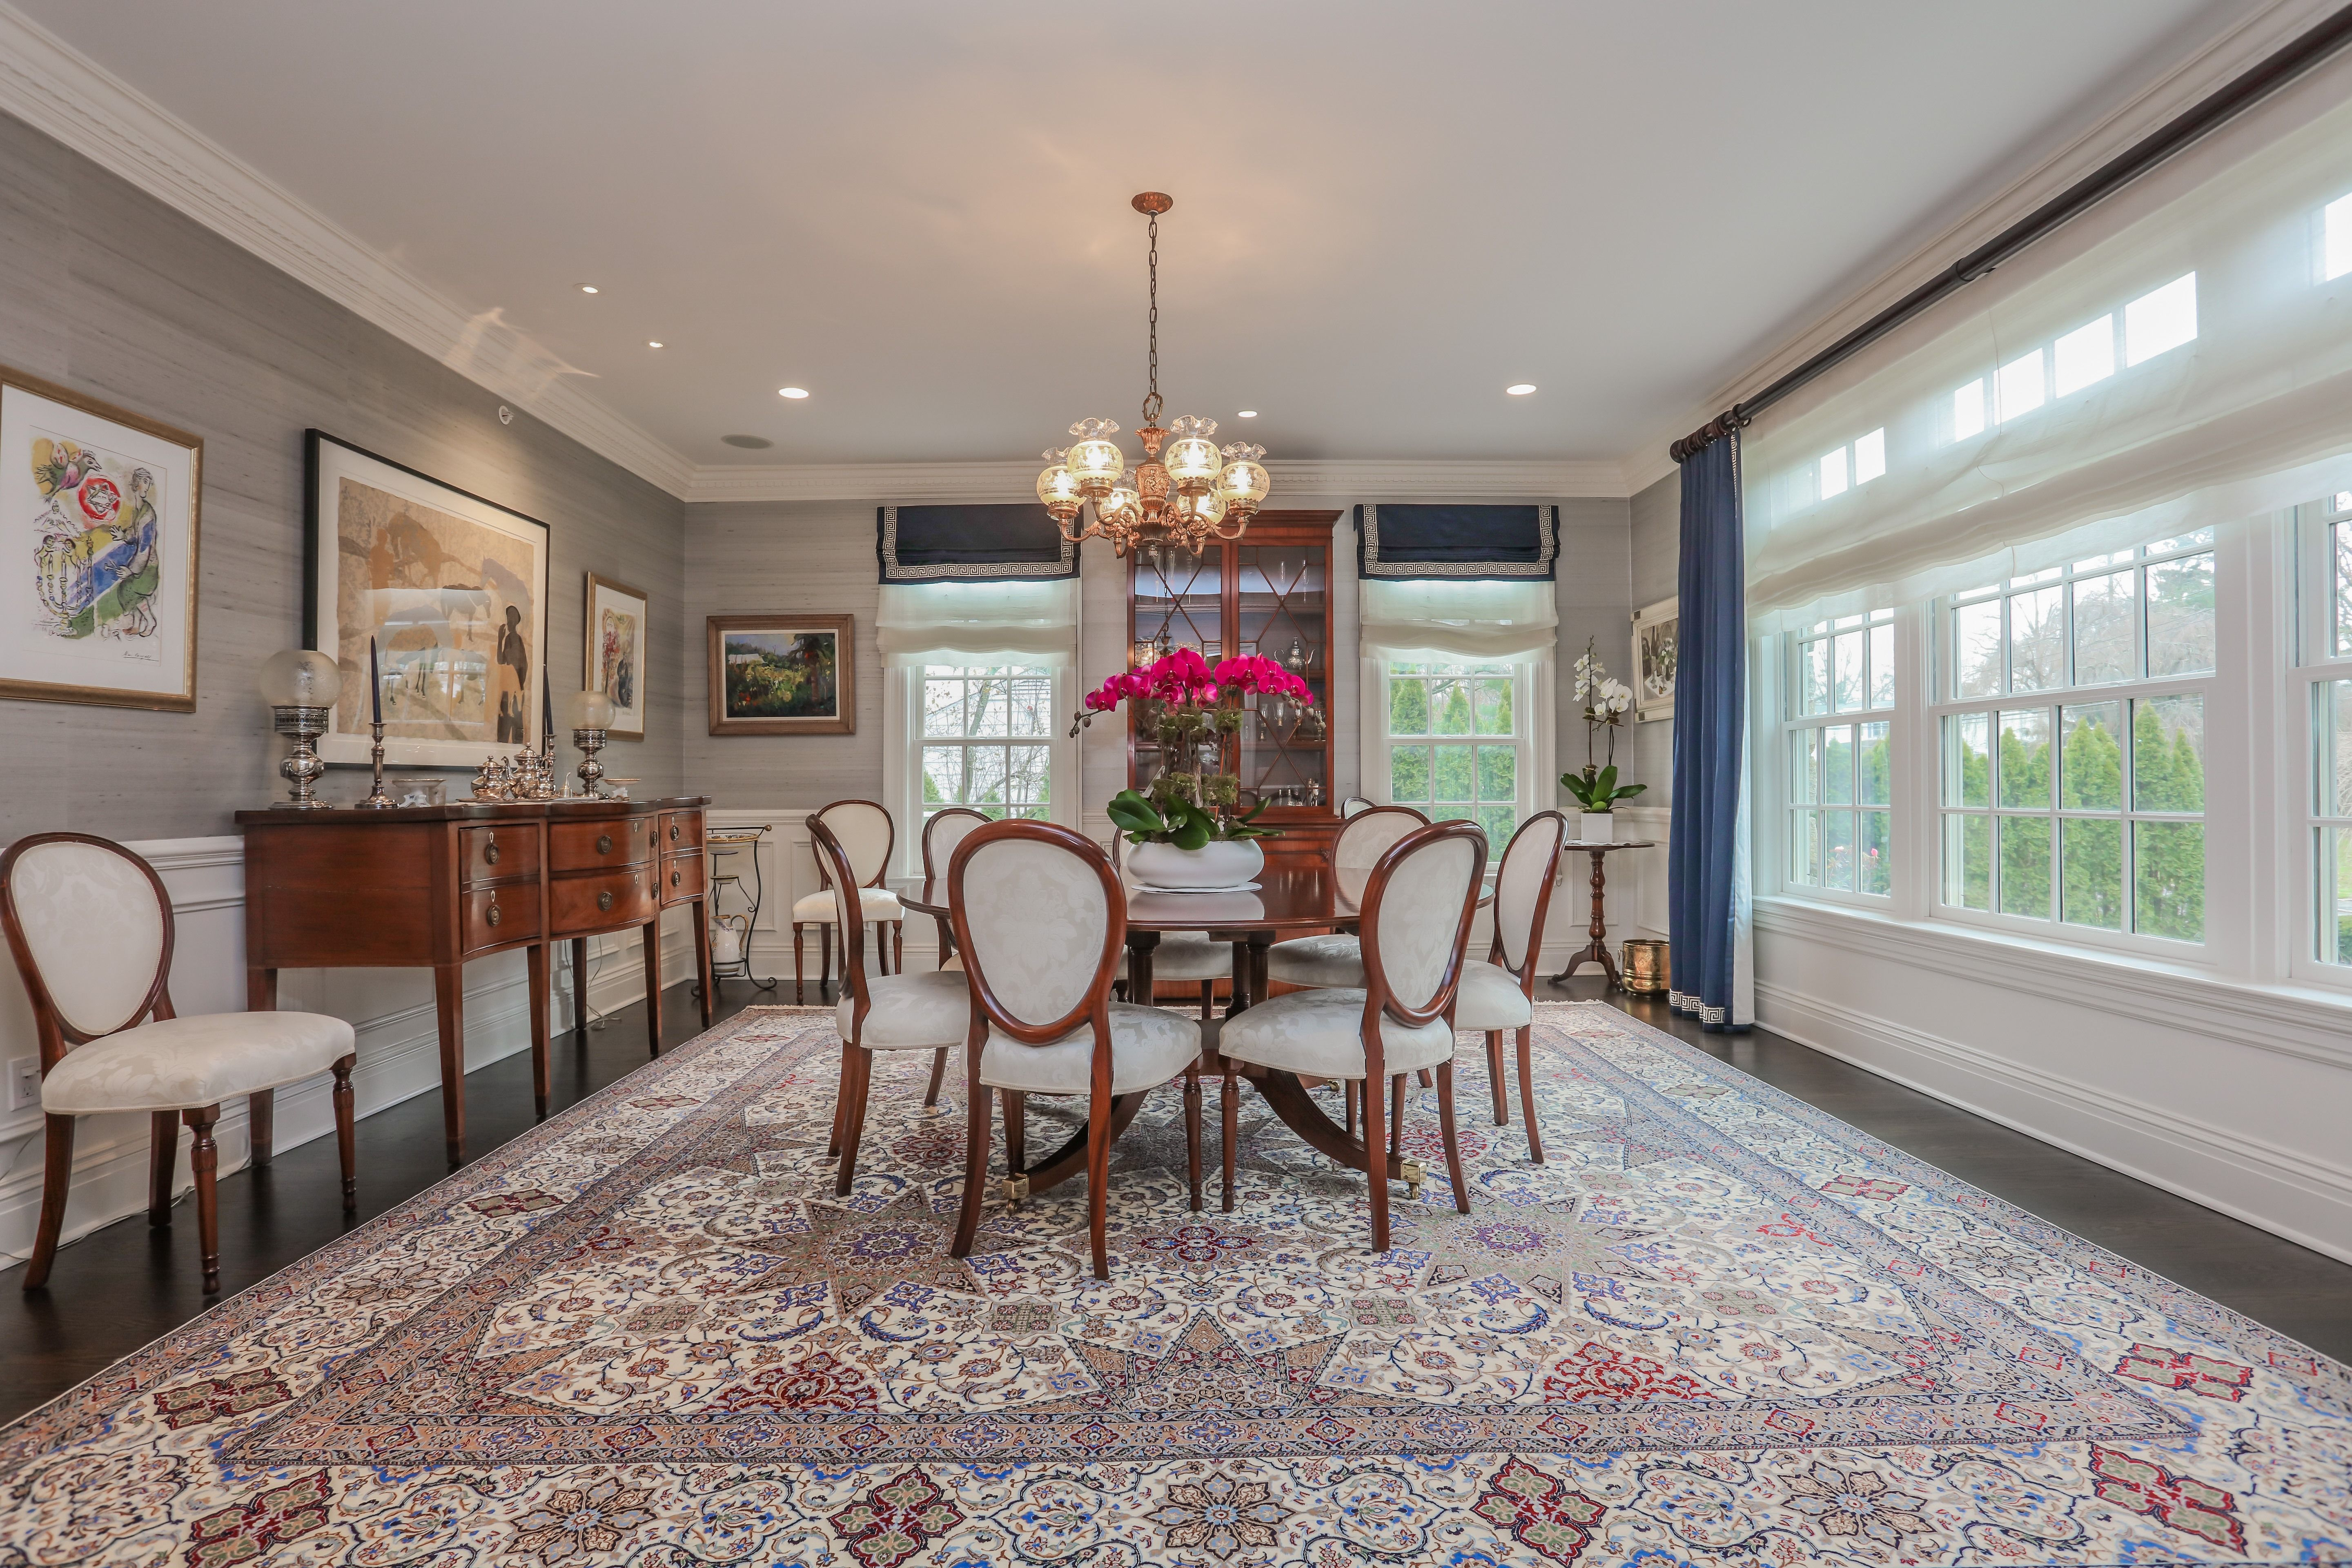 Wainscoting formal dining room - Formal Dining Room With Wainscoting And Large Banks Of Transom Windows